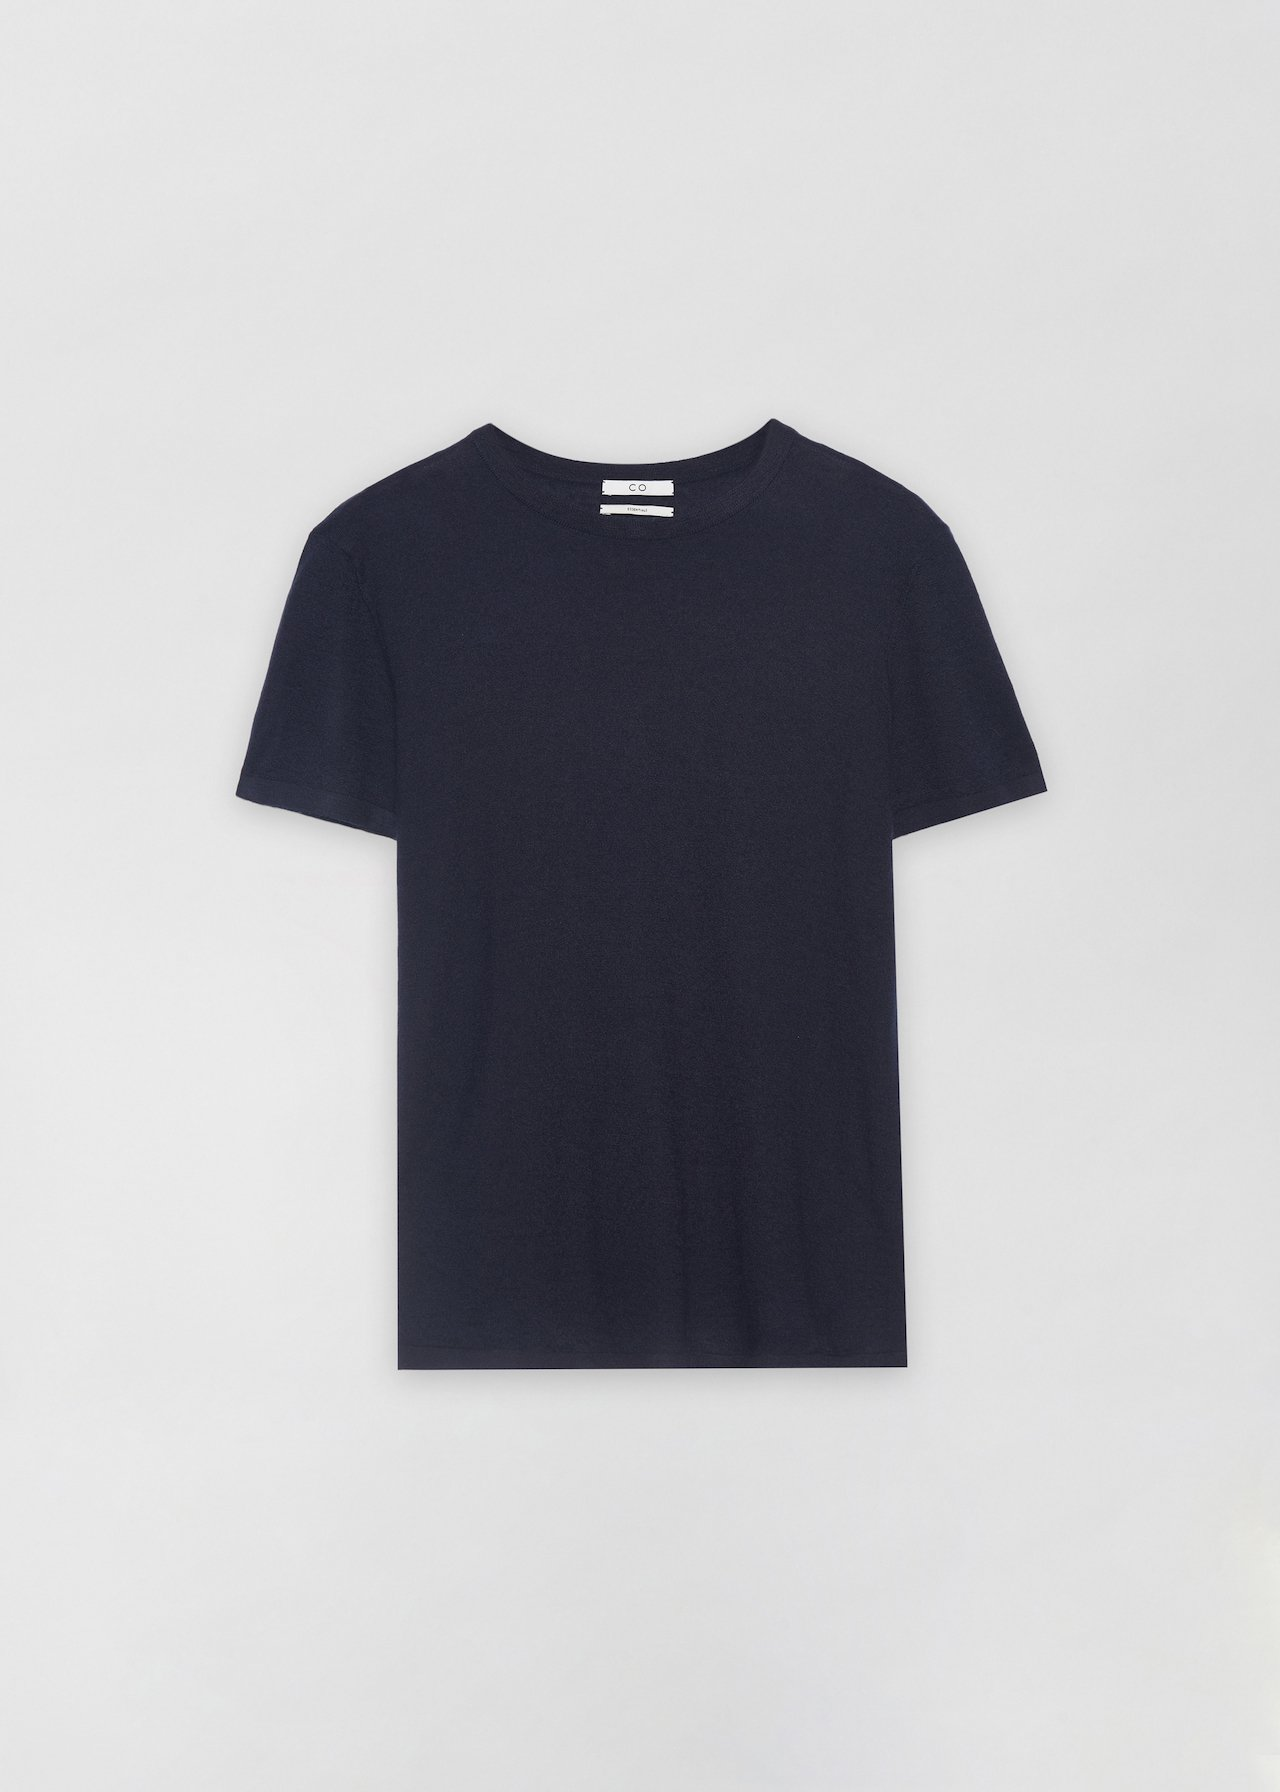 Cashmere T-Shirt - Black in Navy by Co Collections